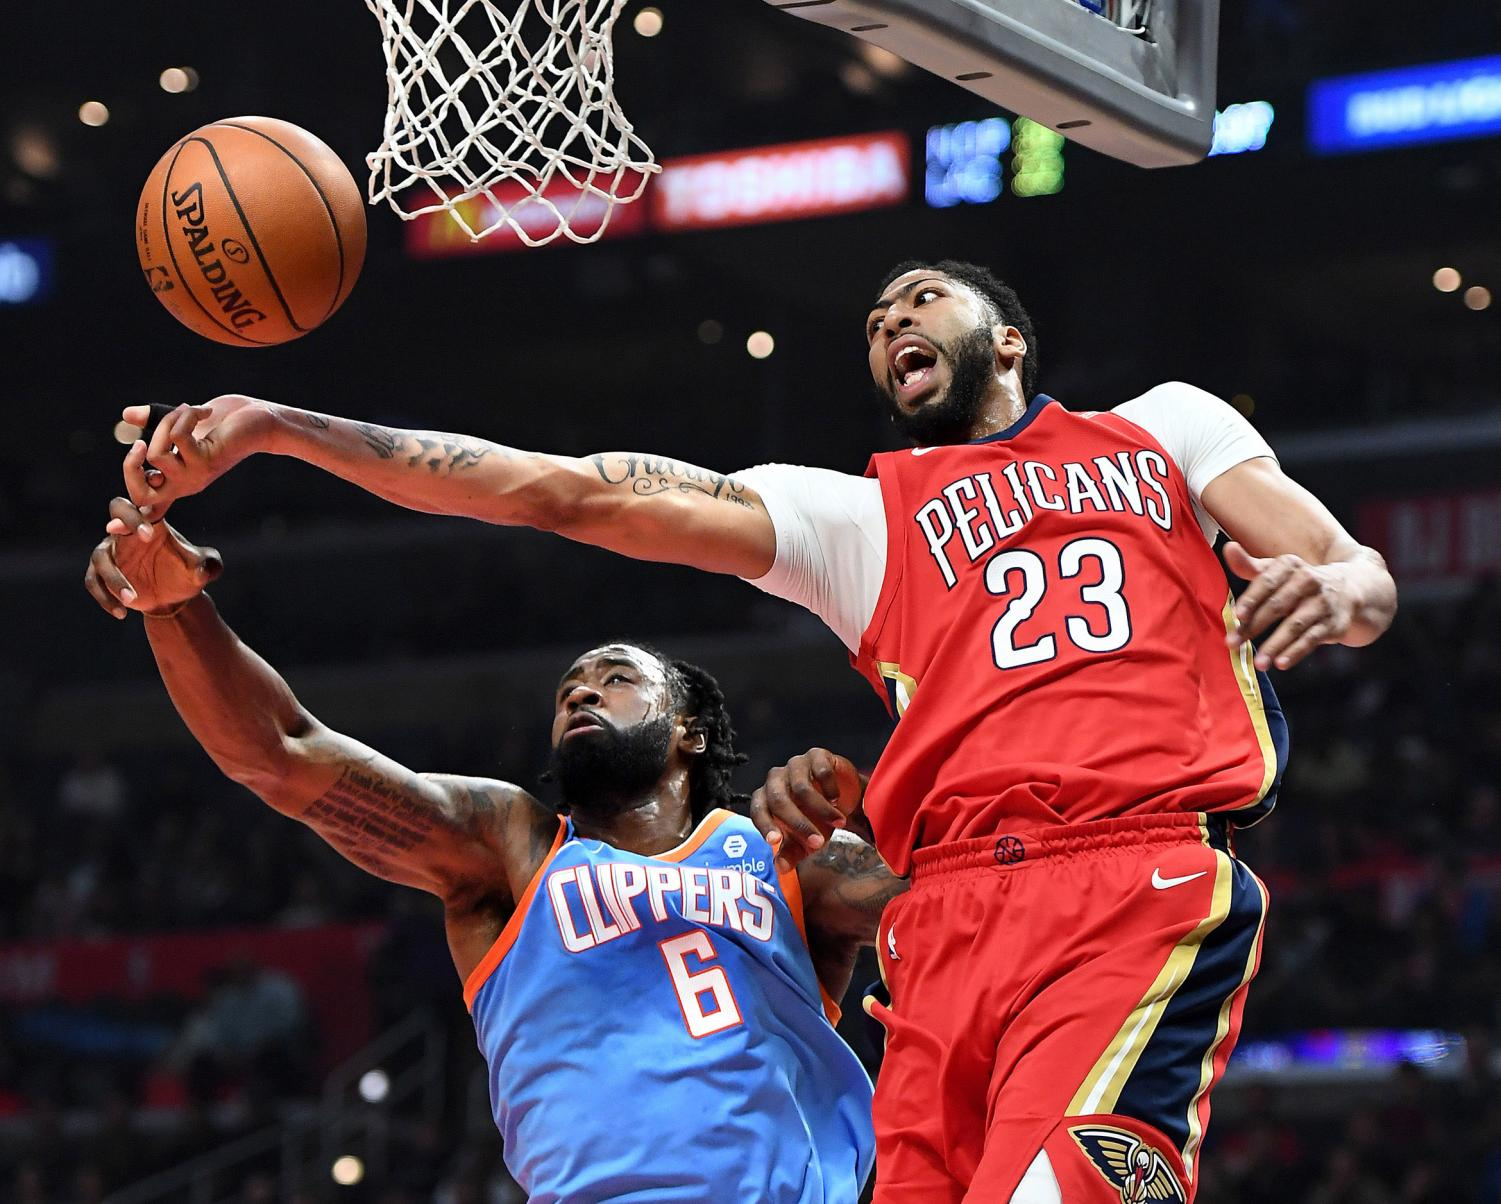 Pelicans forward Anthony Davis (23) blocking Los Angeles Clippers center DeAndre Jordan's (6) shot in their April 9 game at the Staples Center.